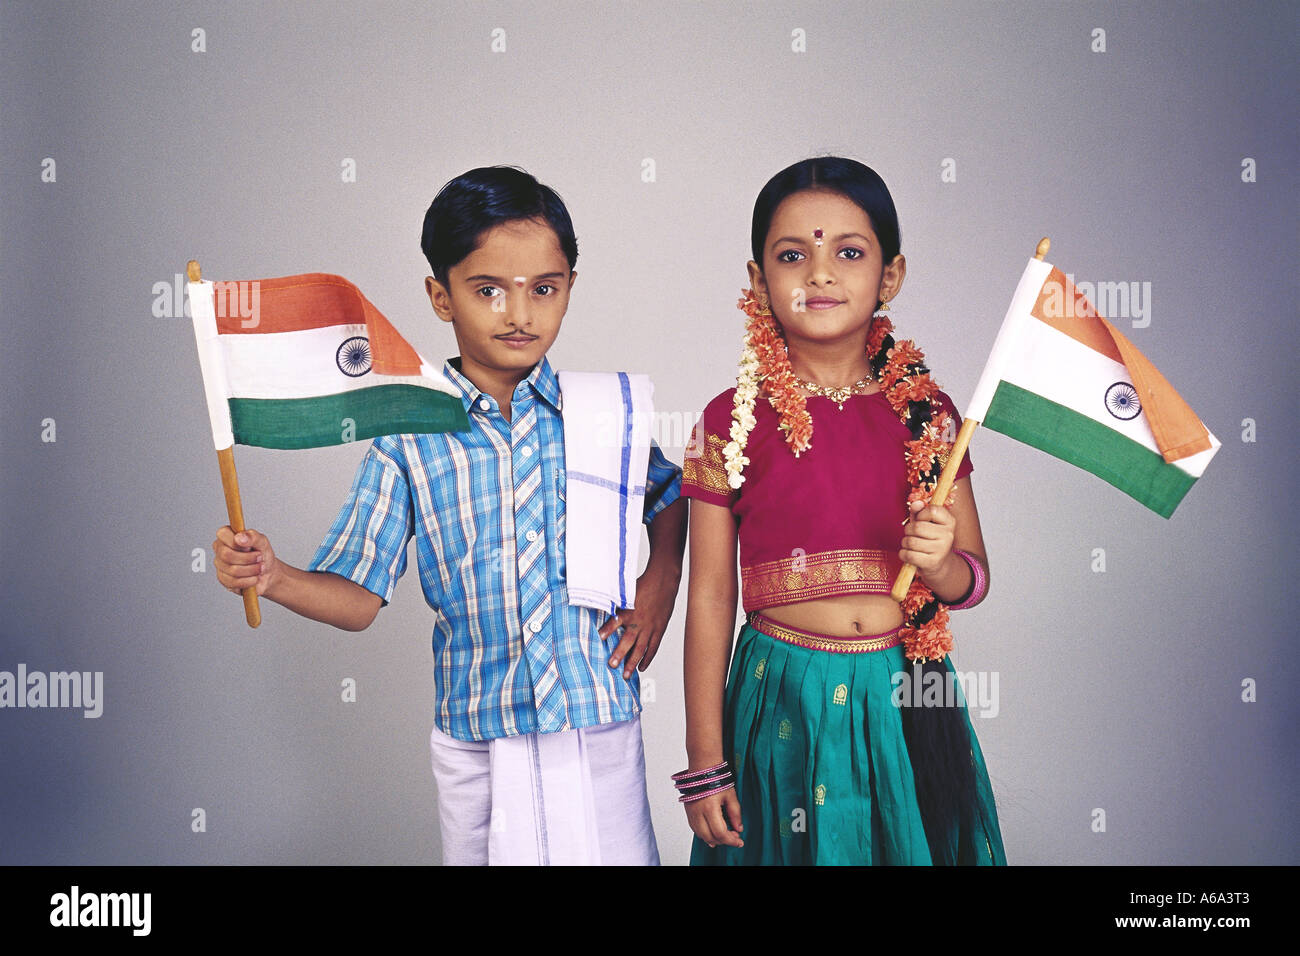 7691bfb9d2 South Indian boy girl wearing fancy dress traditional costume holding the  Indian Flag